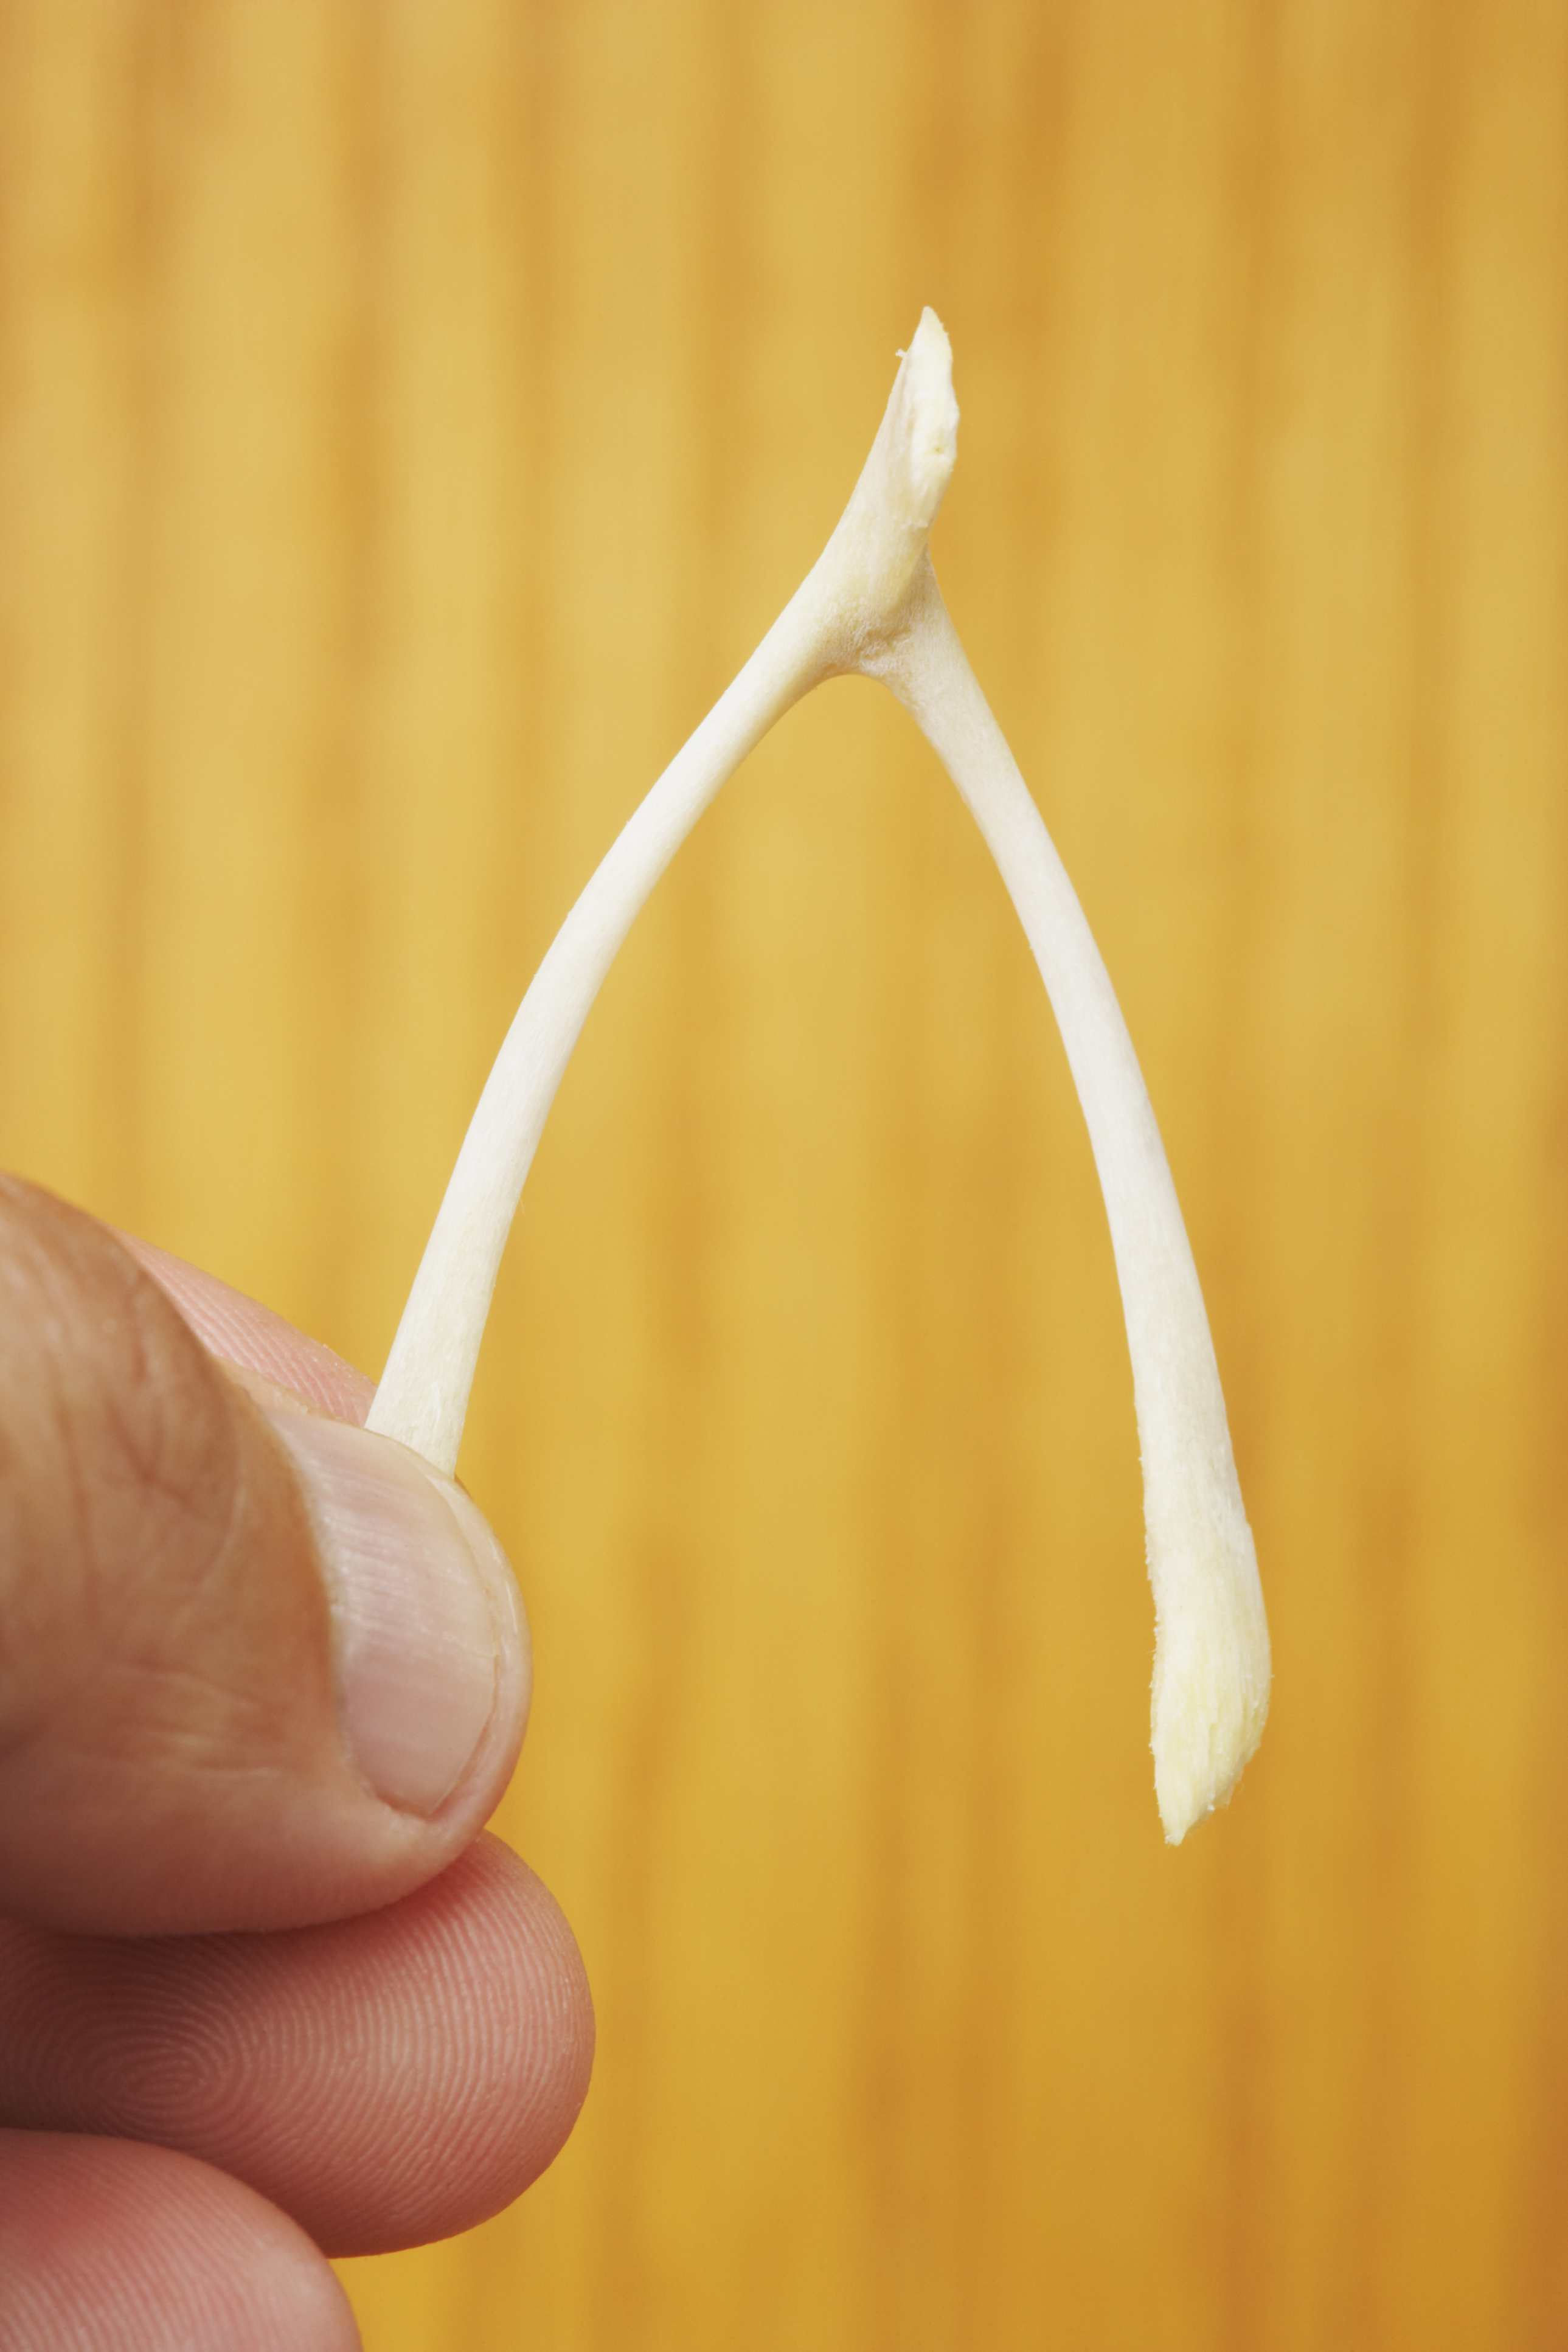 Image of a wishbone about to be broken.